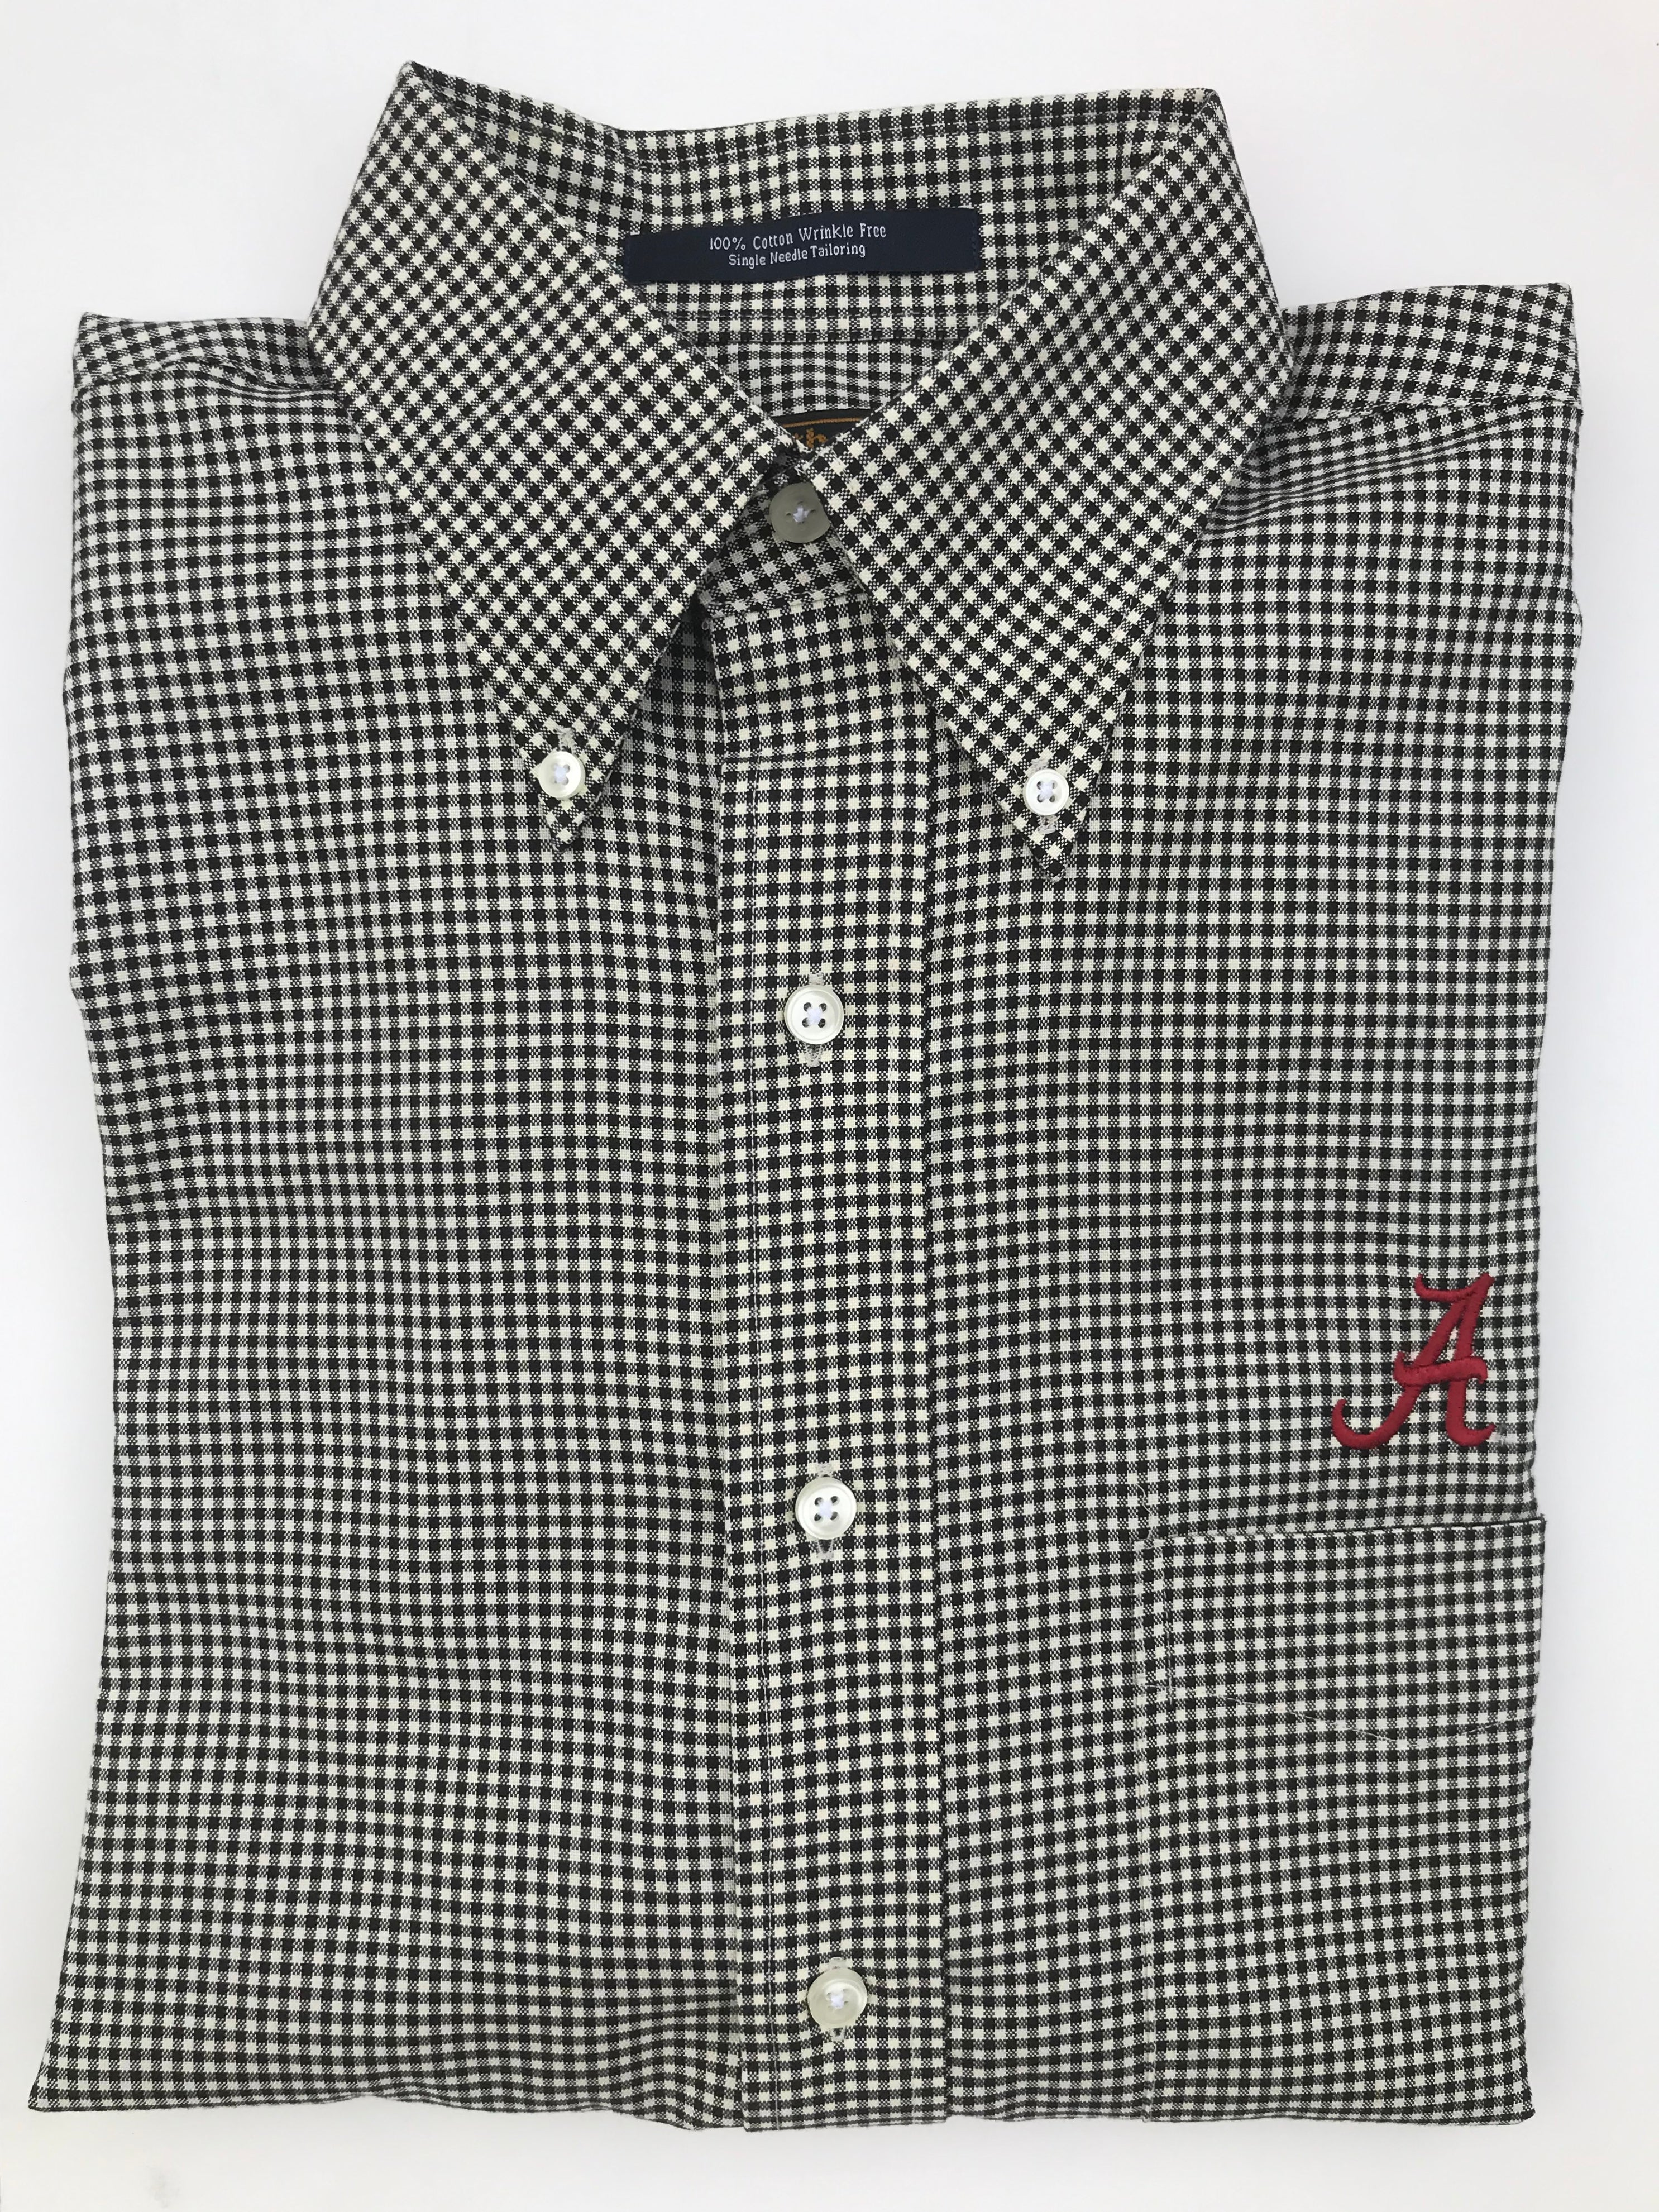 The Shirt Shop Wrinkle Free Black and Bone Check with Logo